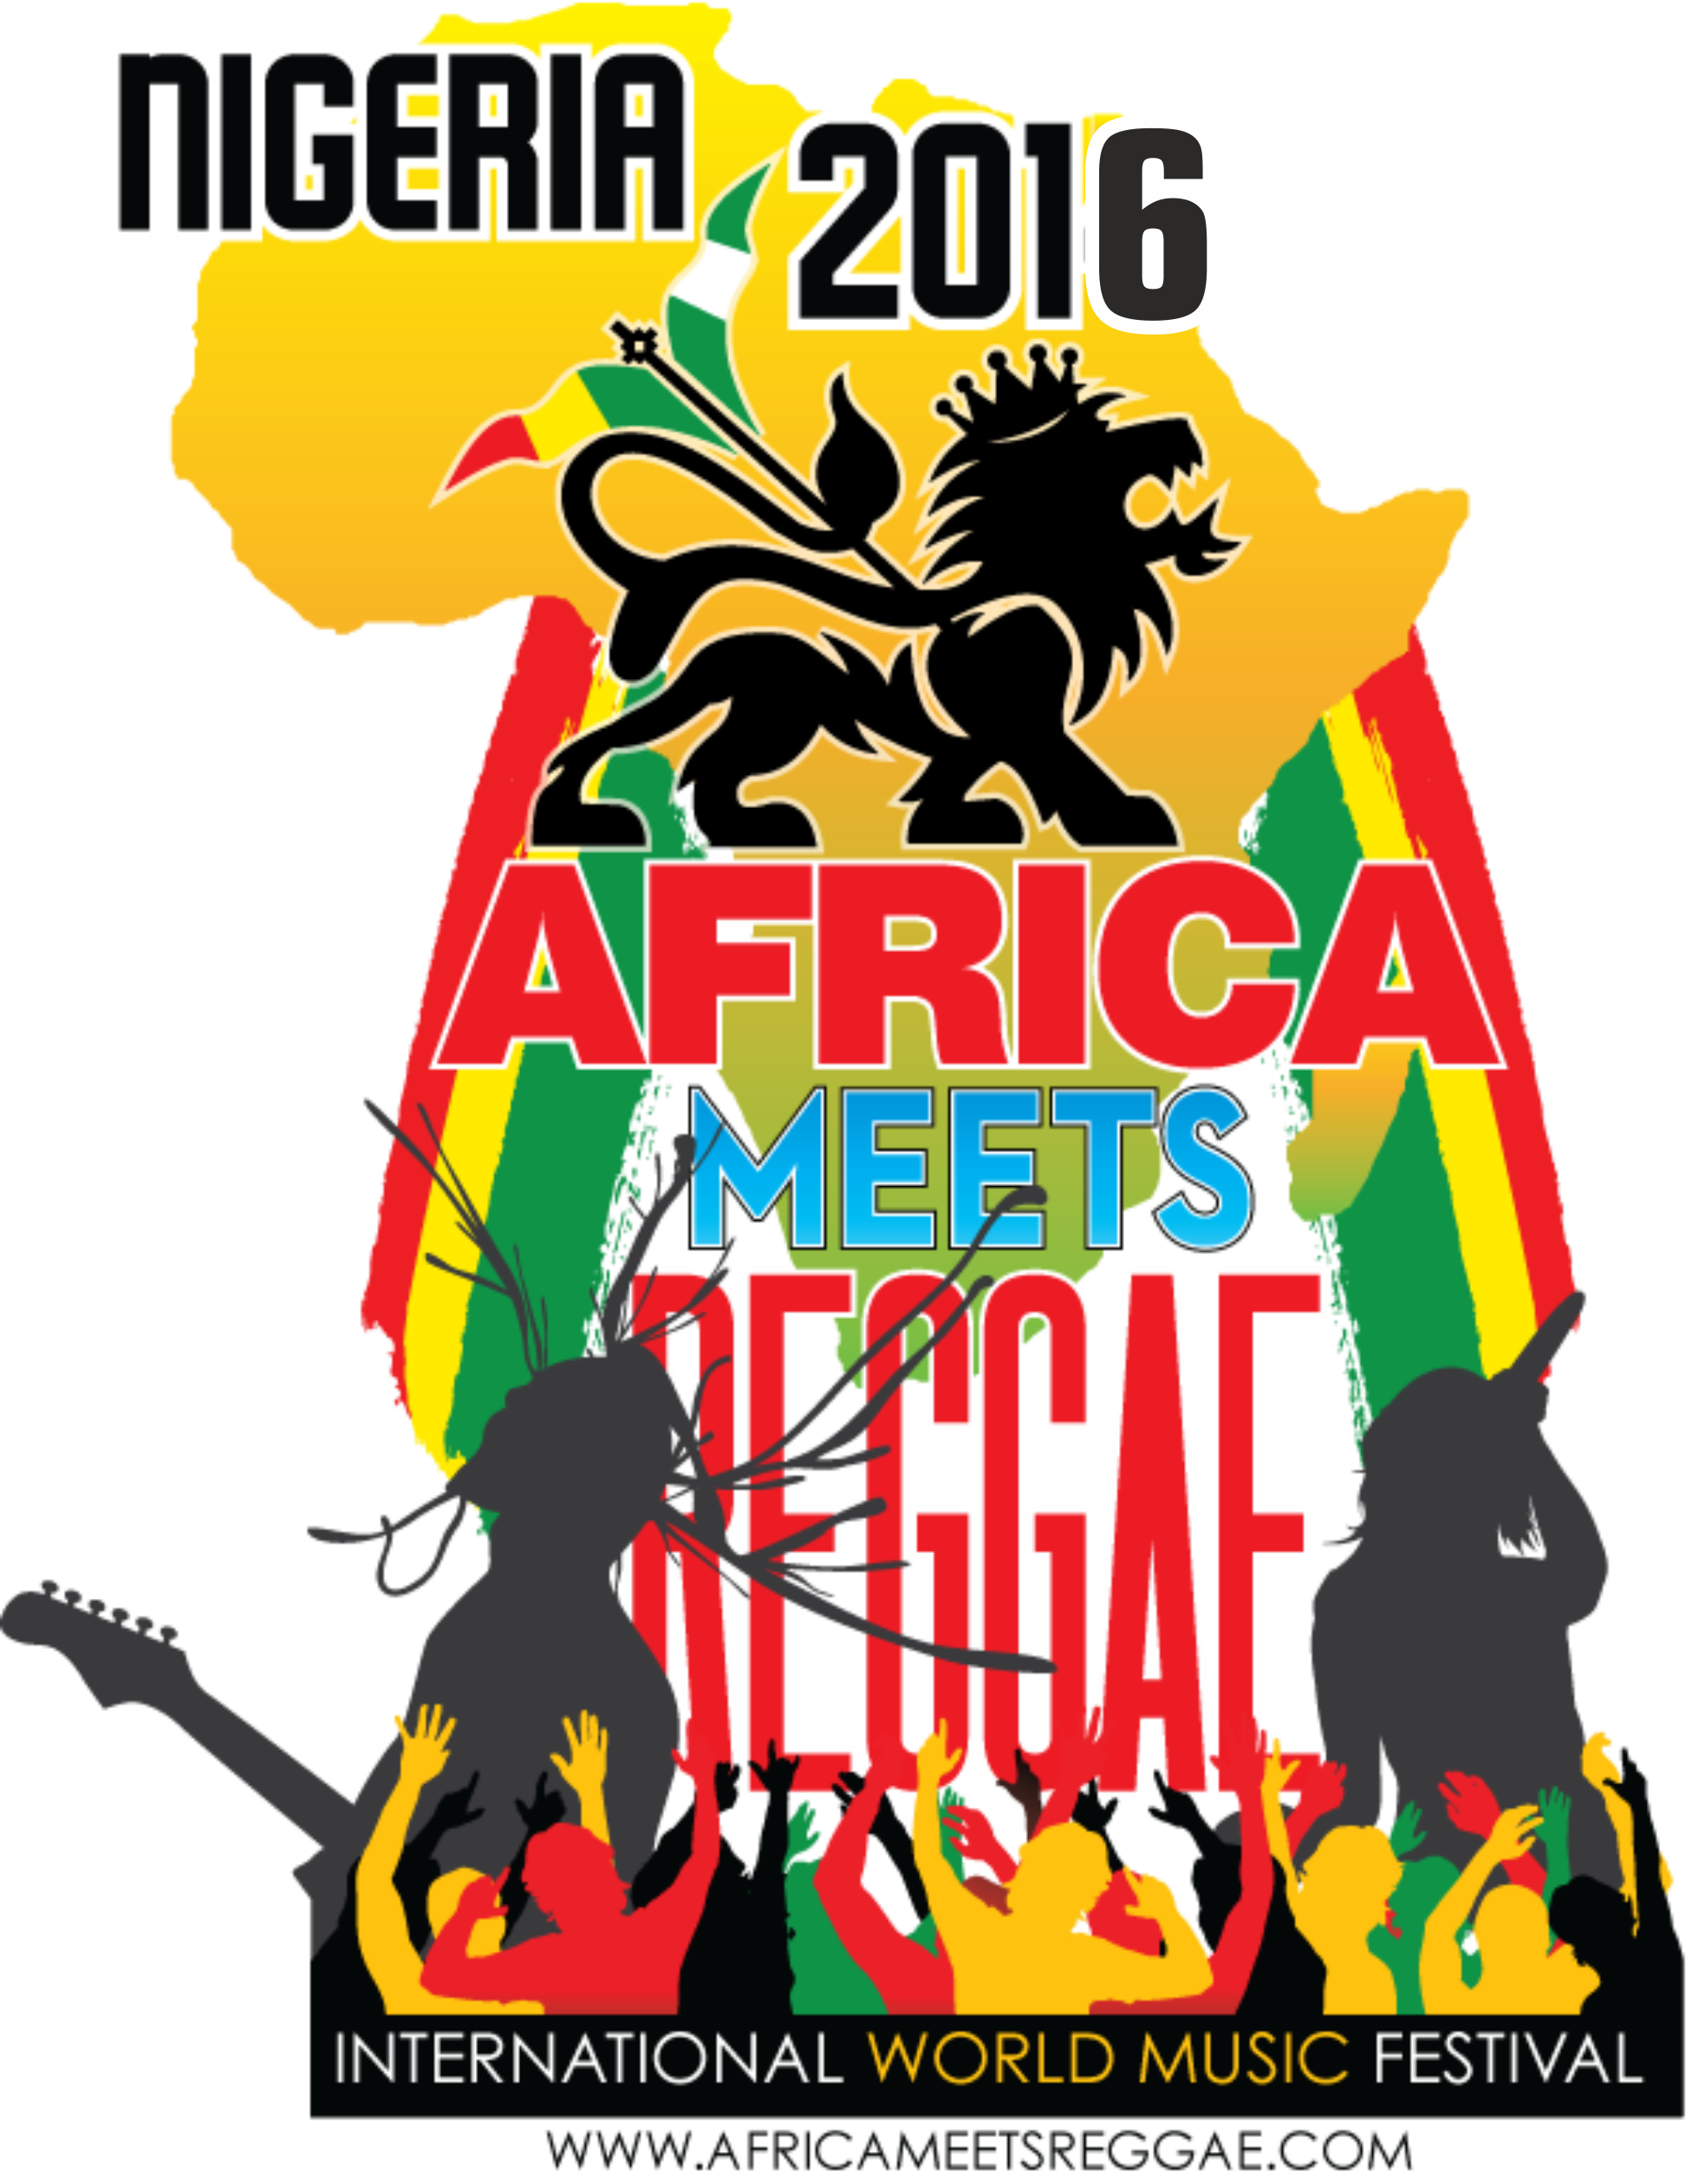 Band clipart world music day. Africa meets reggae international